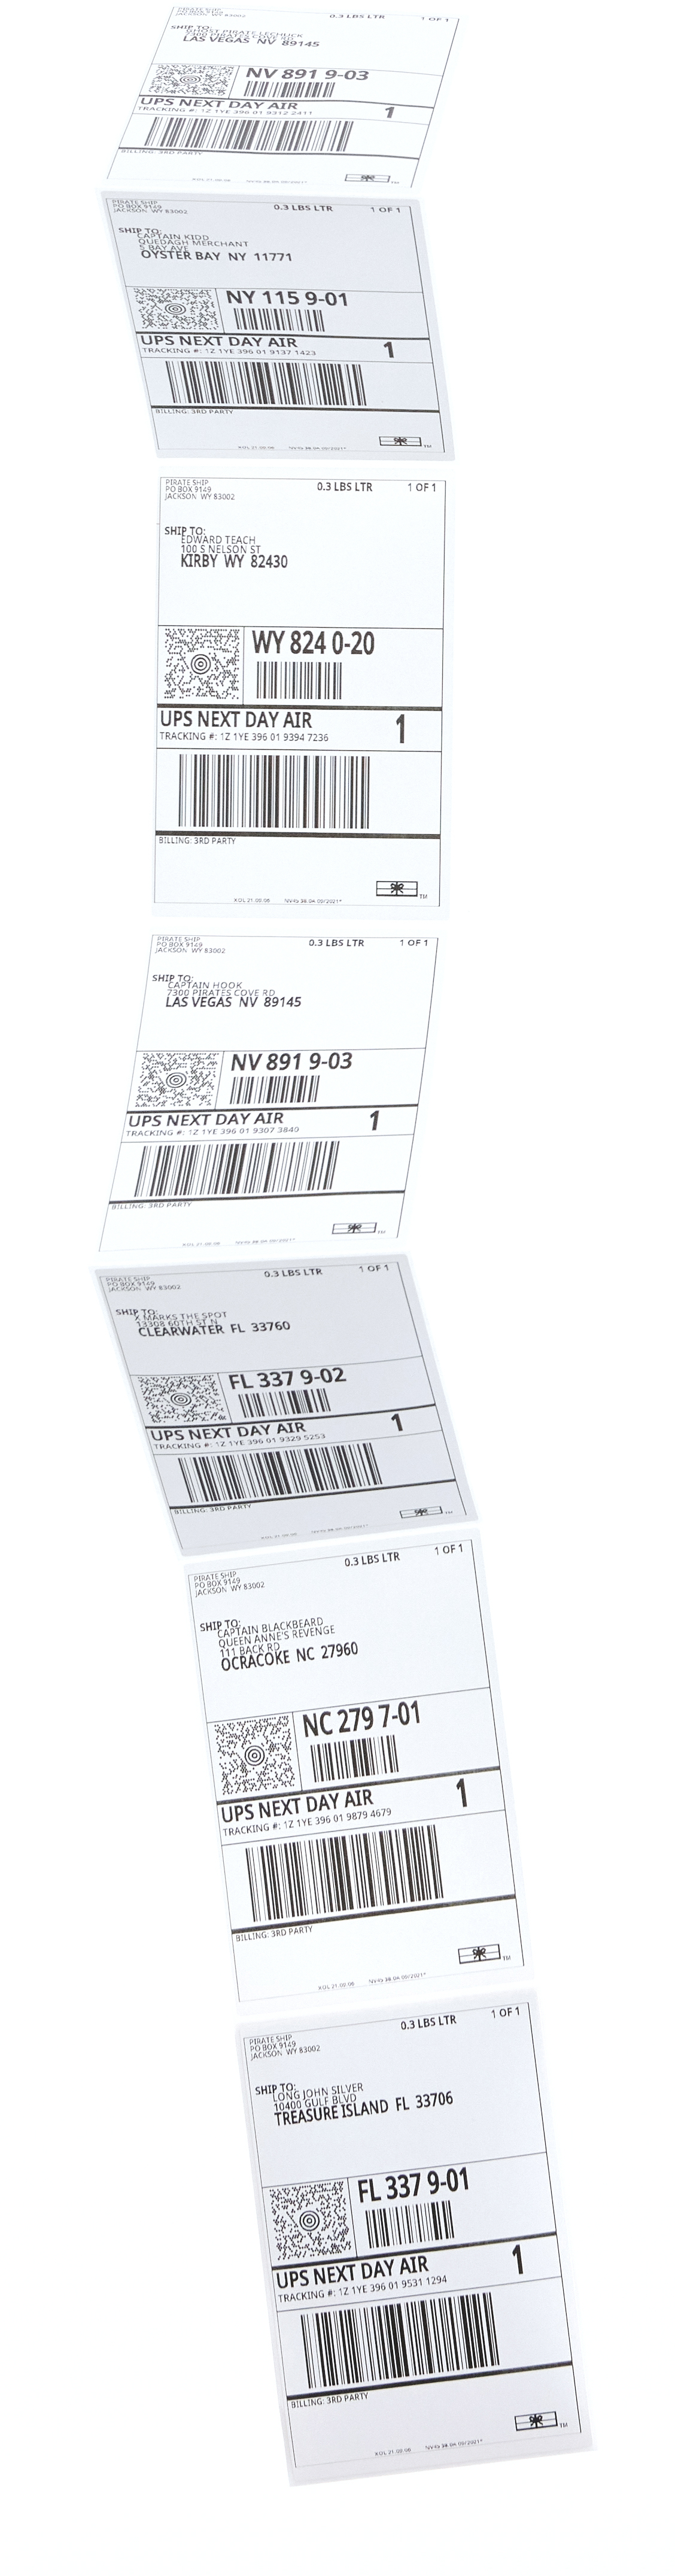 Discounted UPS Next Day Air shipping labels